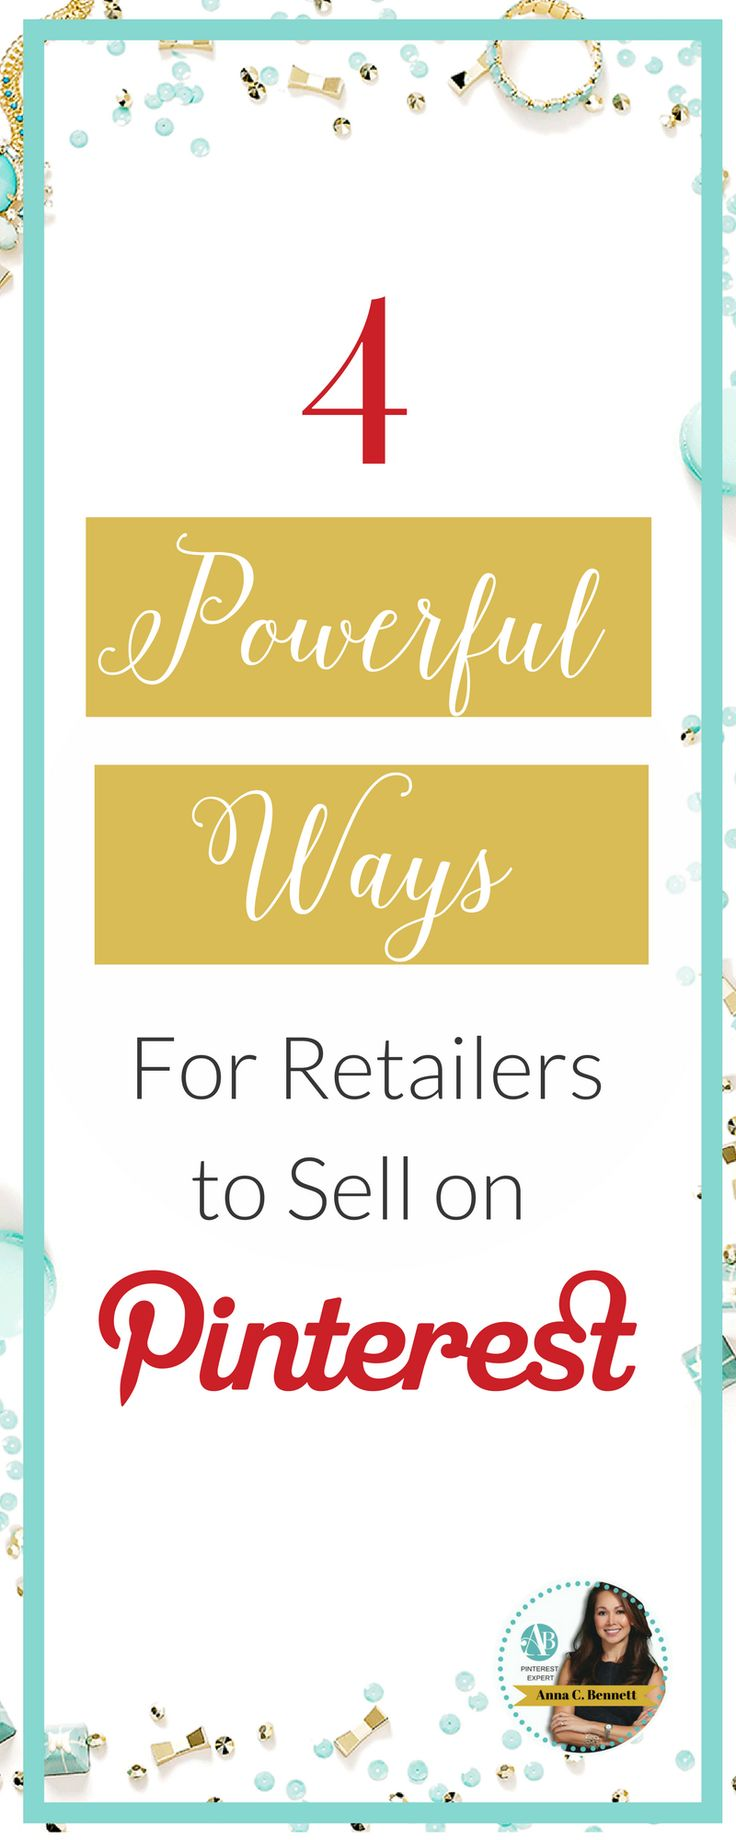 Pinterest is increasingly making it easier for retailers to sell (and buyers to buy) directly on the site. We asked Pinterest Expert Anna Bennett to break down the newest retailer-friendly features on the platform. Click here to read the full article http://www.jckonline.com/2016/11/23/rise-pinterest-shopping-not-social-site | Pinterest for Business Tips @jckmagazine